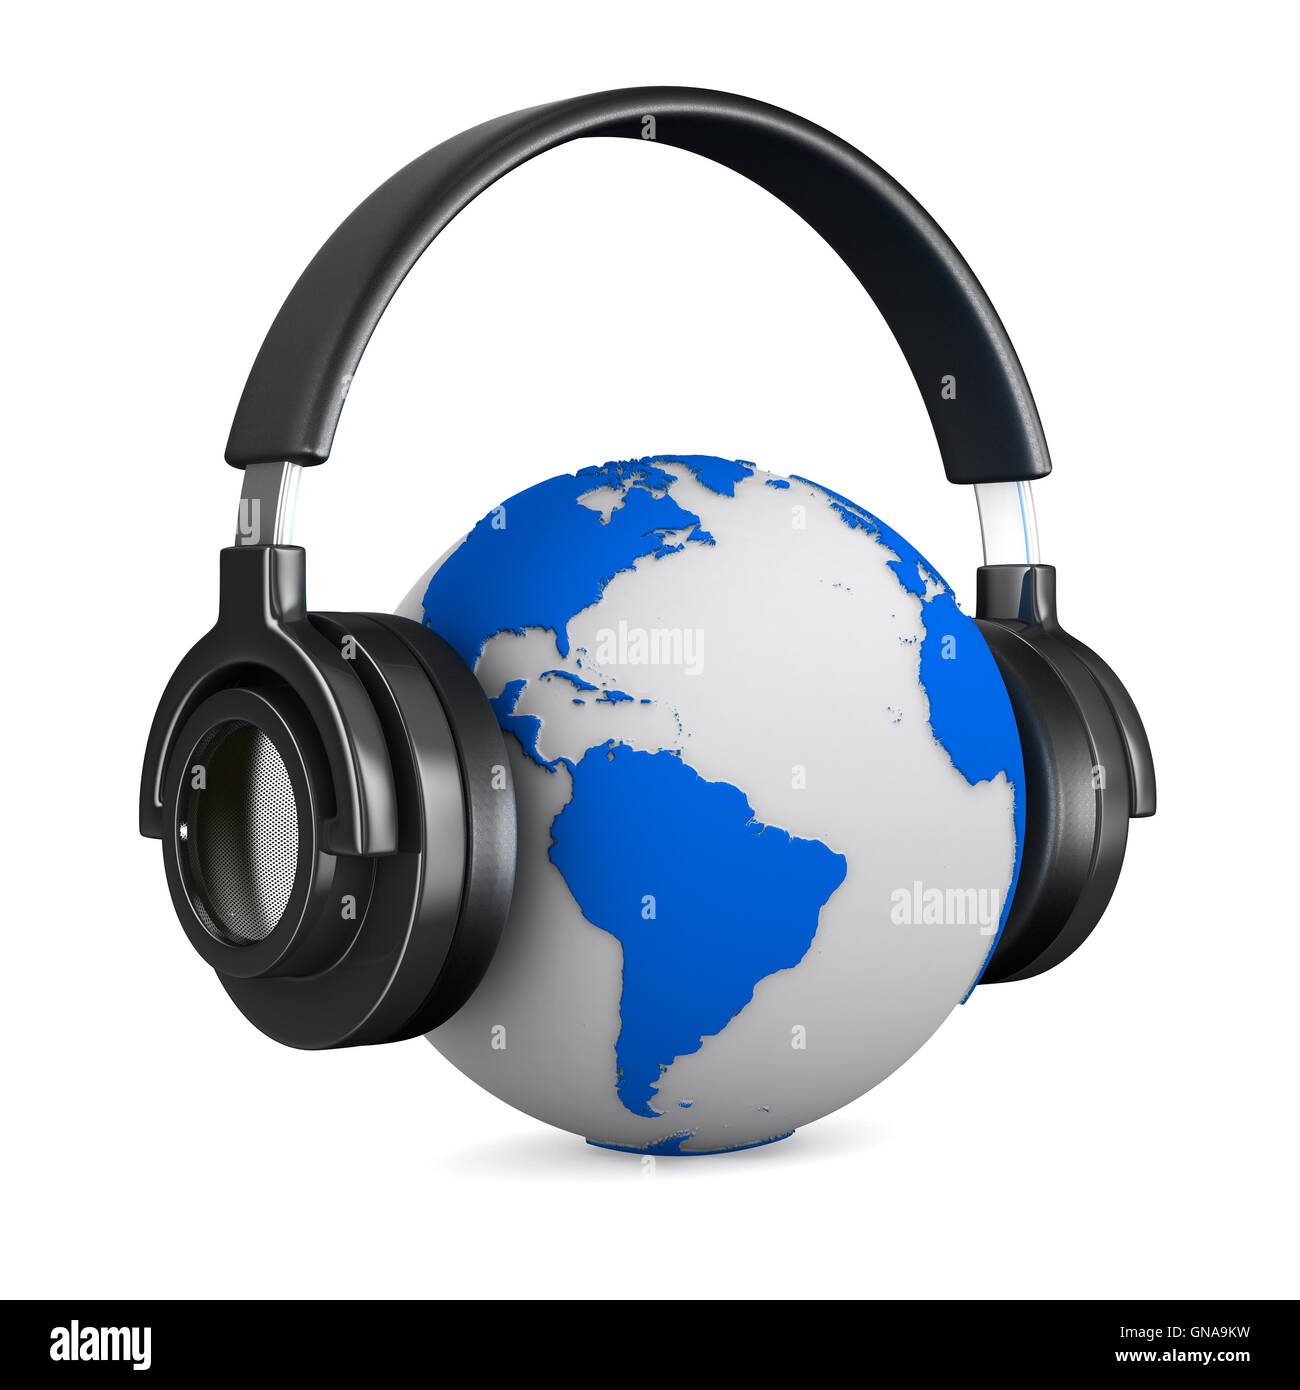 Headset On Globe Isolated Stock Photos Headseet Kw Headphone And White Background 3d Image